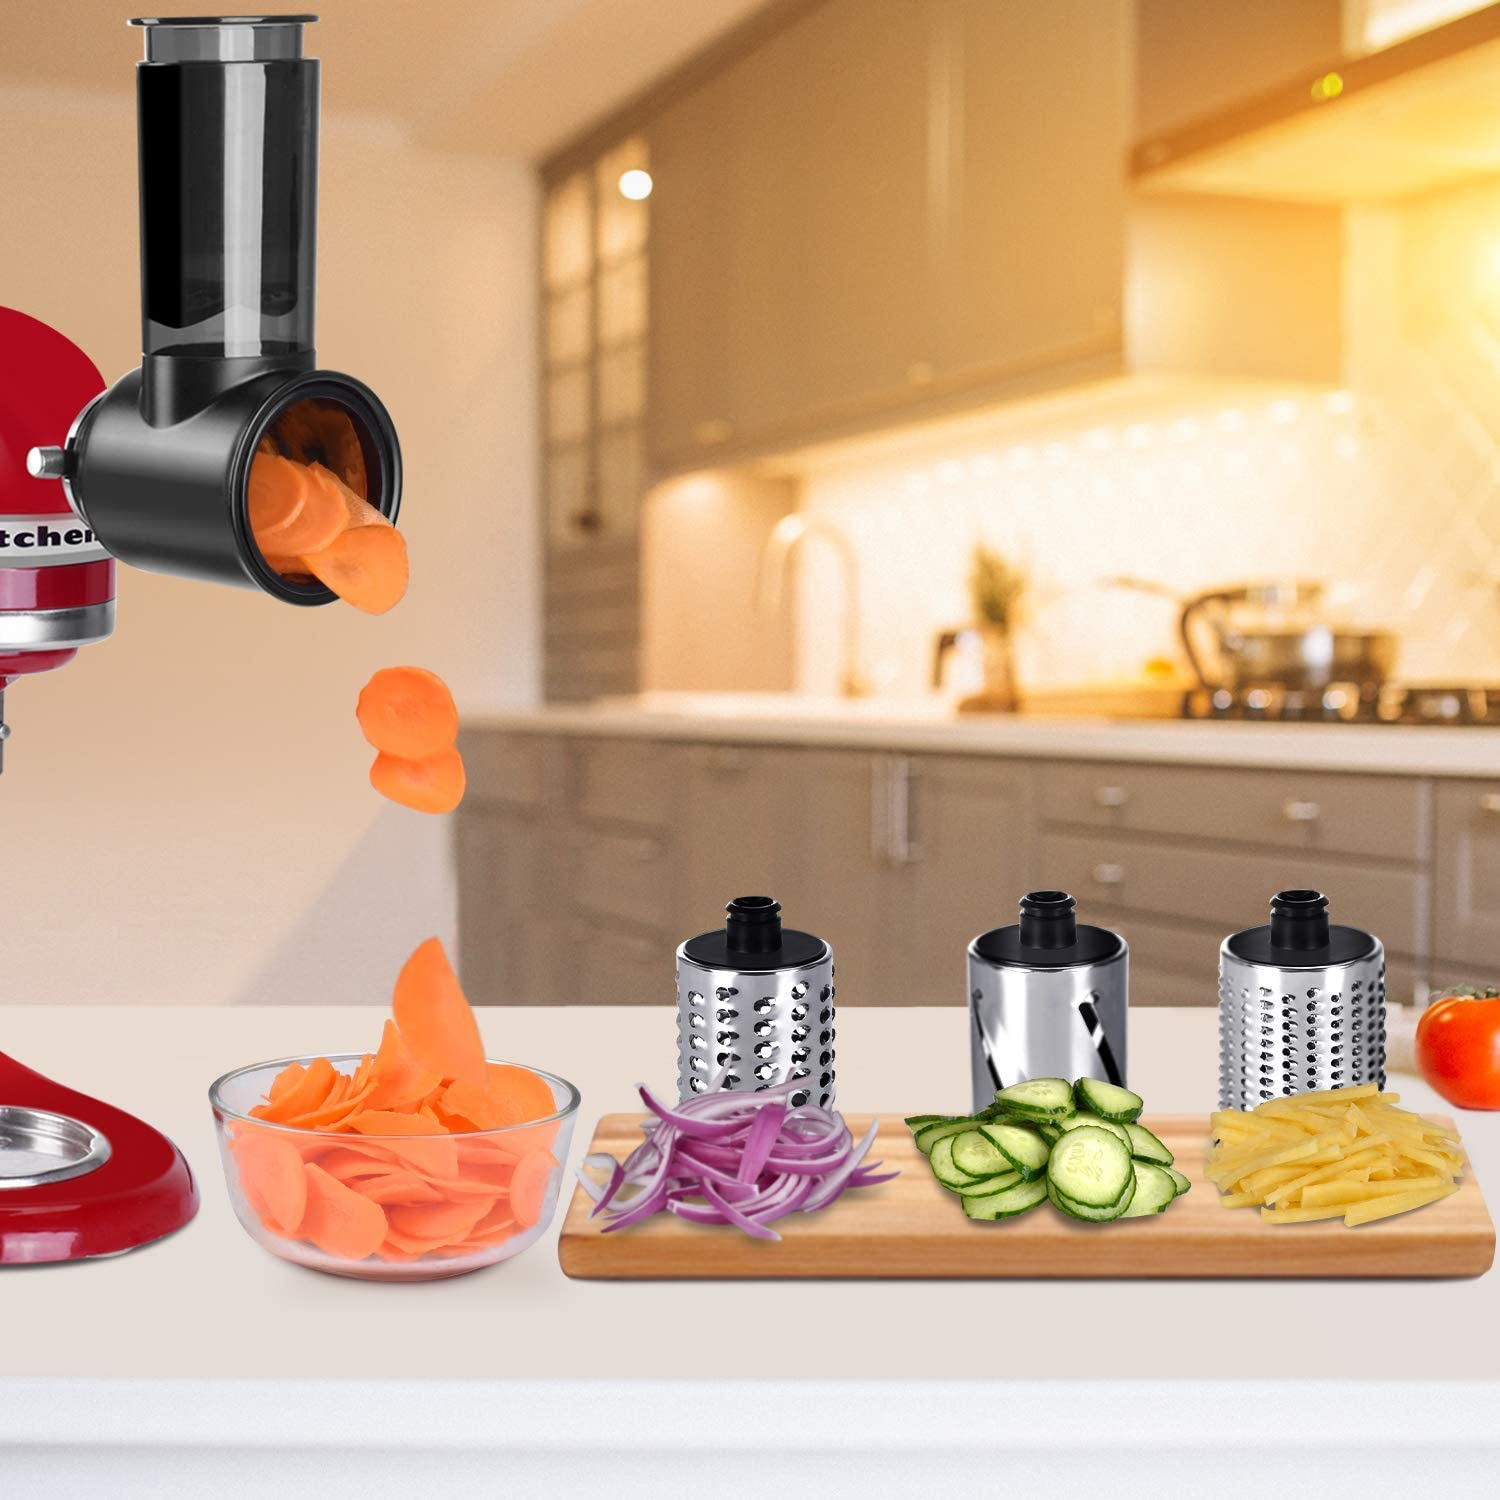 Shredding and Grating Accessory for KitchenAid Stand Mixers as Vegetable Chopper Accessory COFUN Salad Maker Attachment Black Slicer Shredder Attachment for KitchenAid